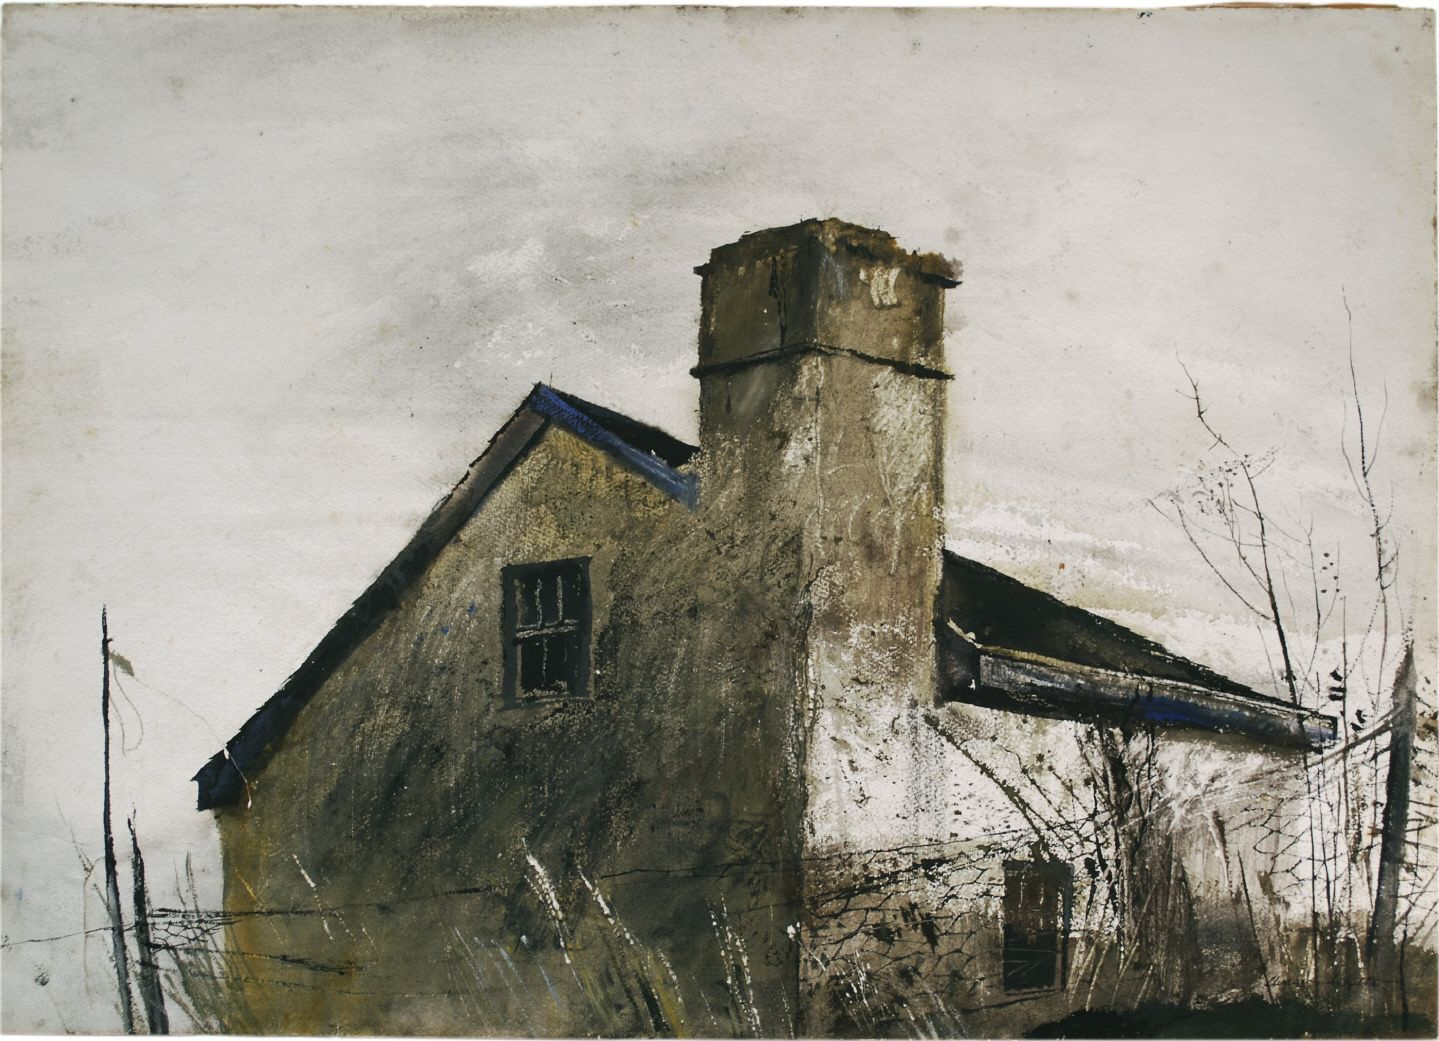 Andrew Wyeth Famous Paintings | Andrew Wyeth Famous Painting Titles Art Images and Pictures Collection